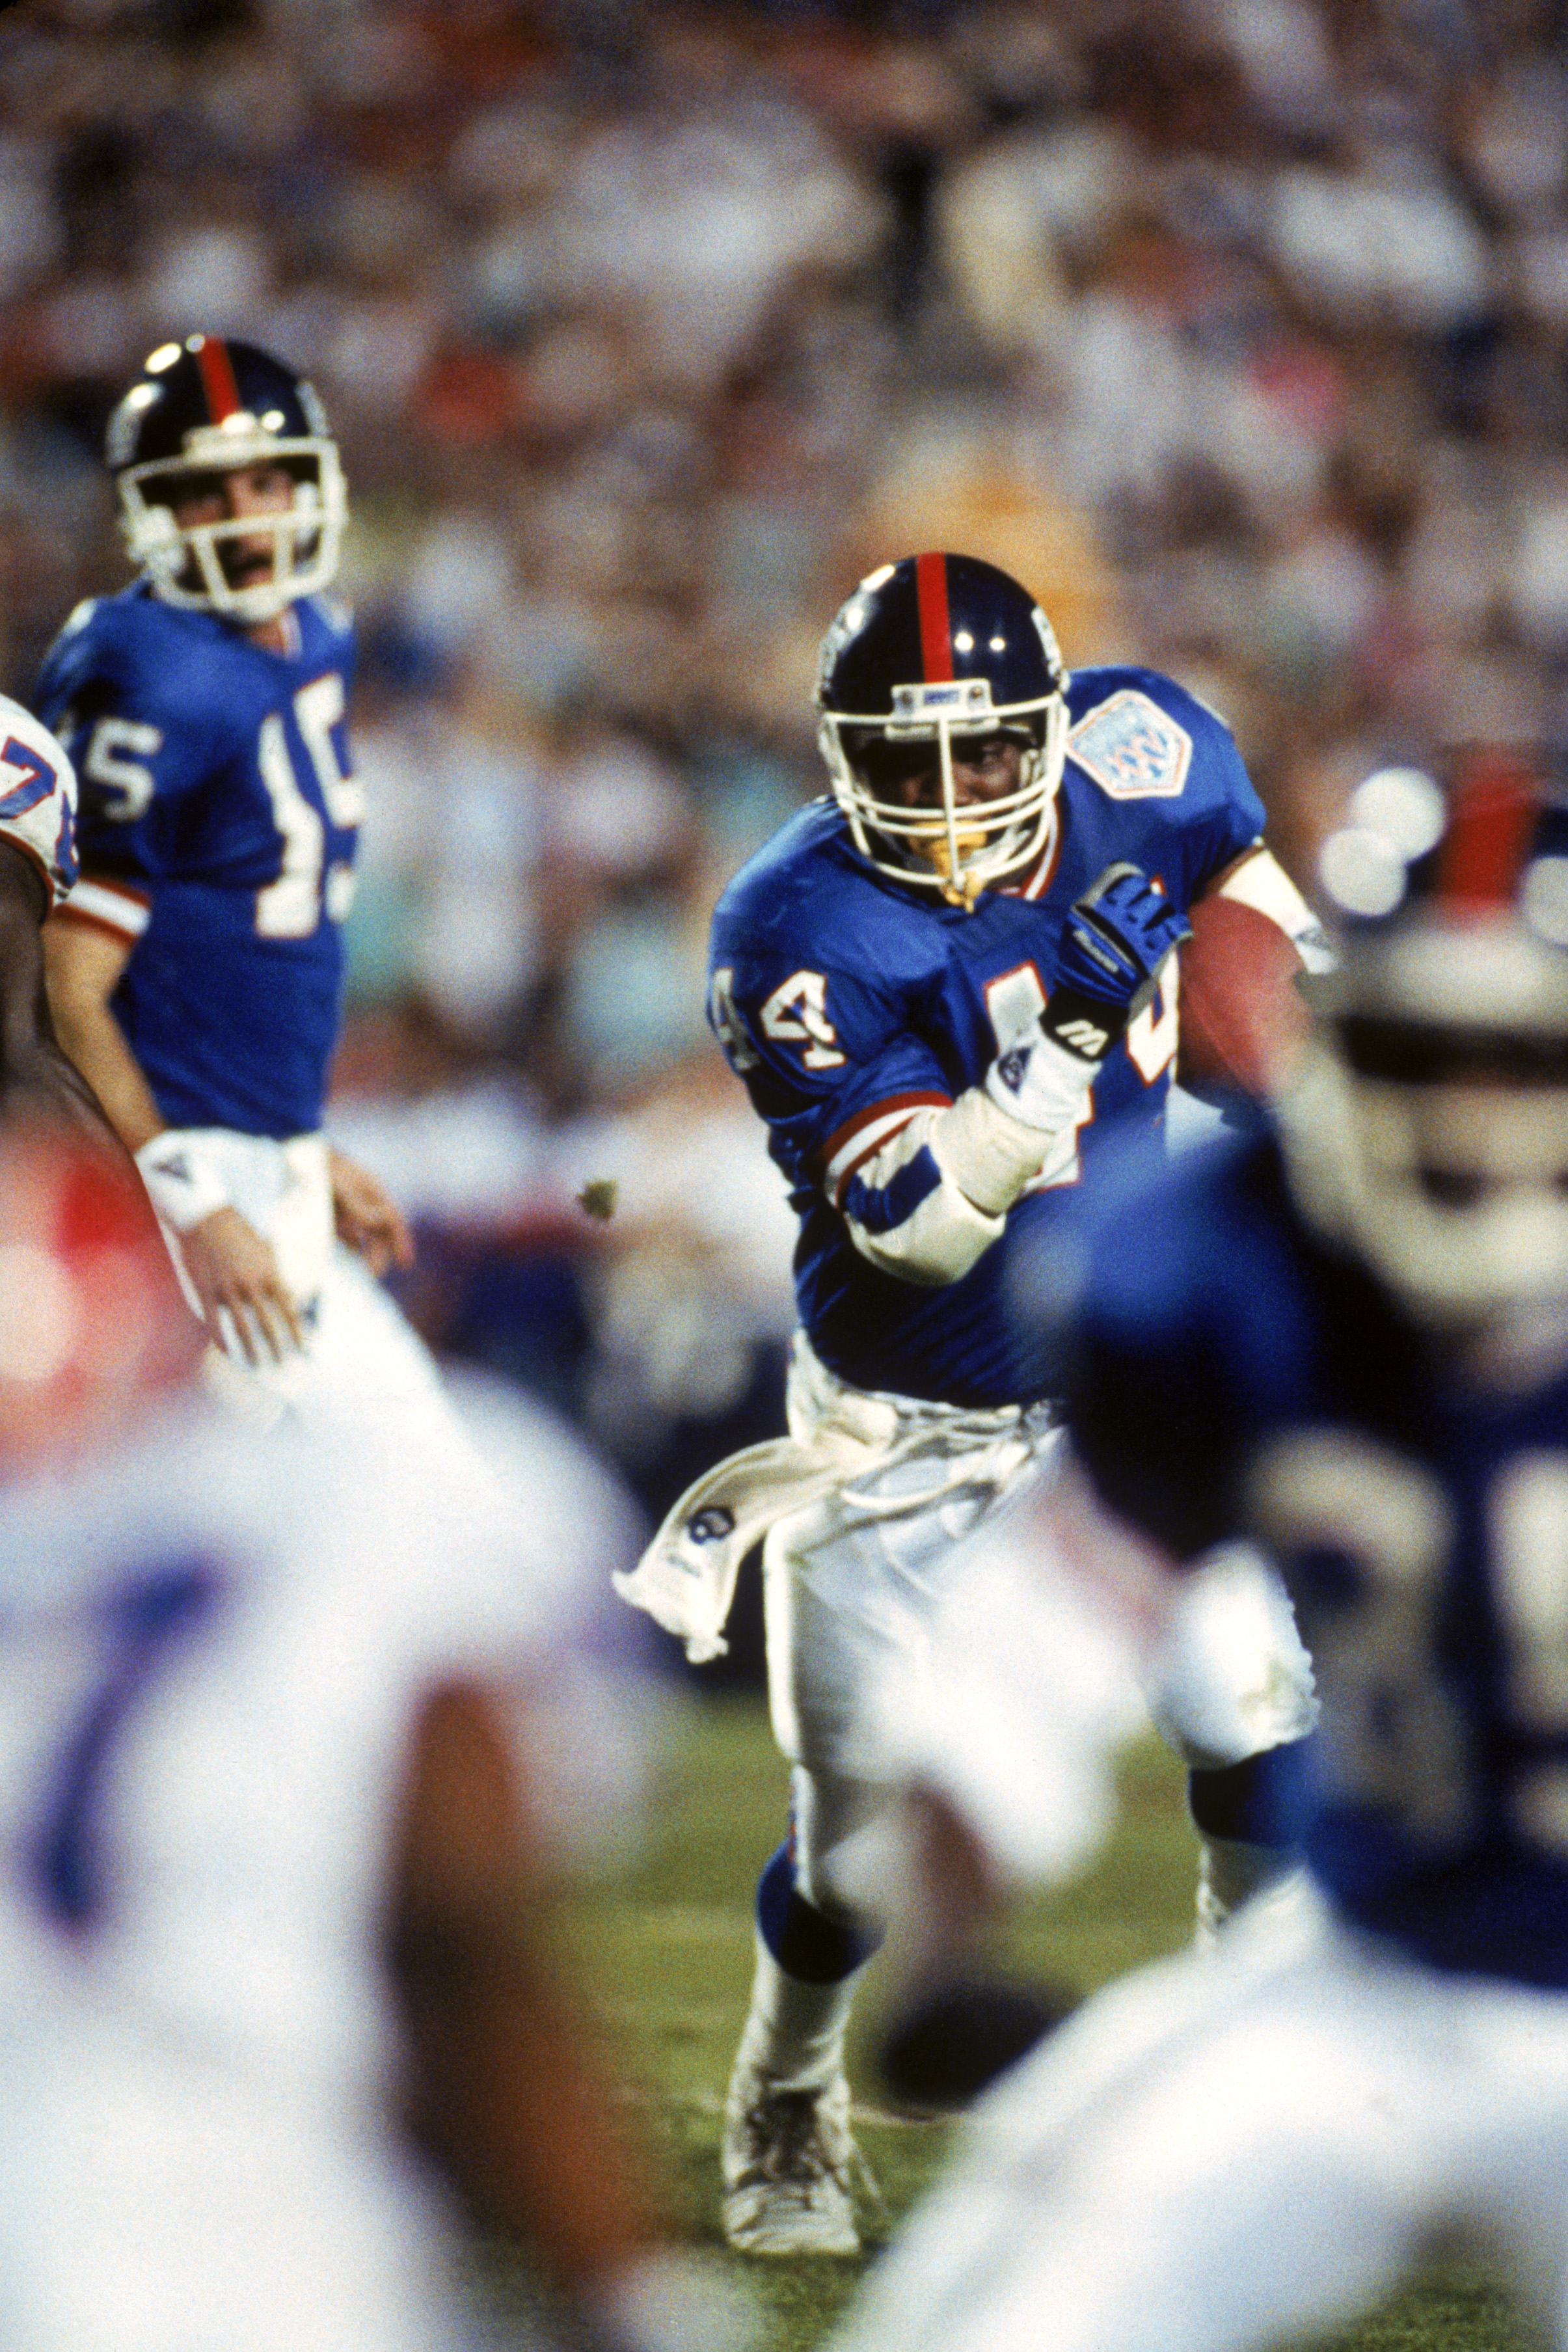 TAMPA, FL - JANUARY 27:  Running back Maurice Carthon #44 of the New York Giants carries the ball against the Buffalo Bills during Super Bowl XXV at Tampa Stadium on January 27, 1991 in Tampa, Florida. The Giants defeated the Bills 20-19.  (Photo by Georg